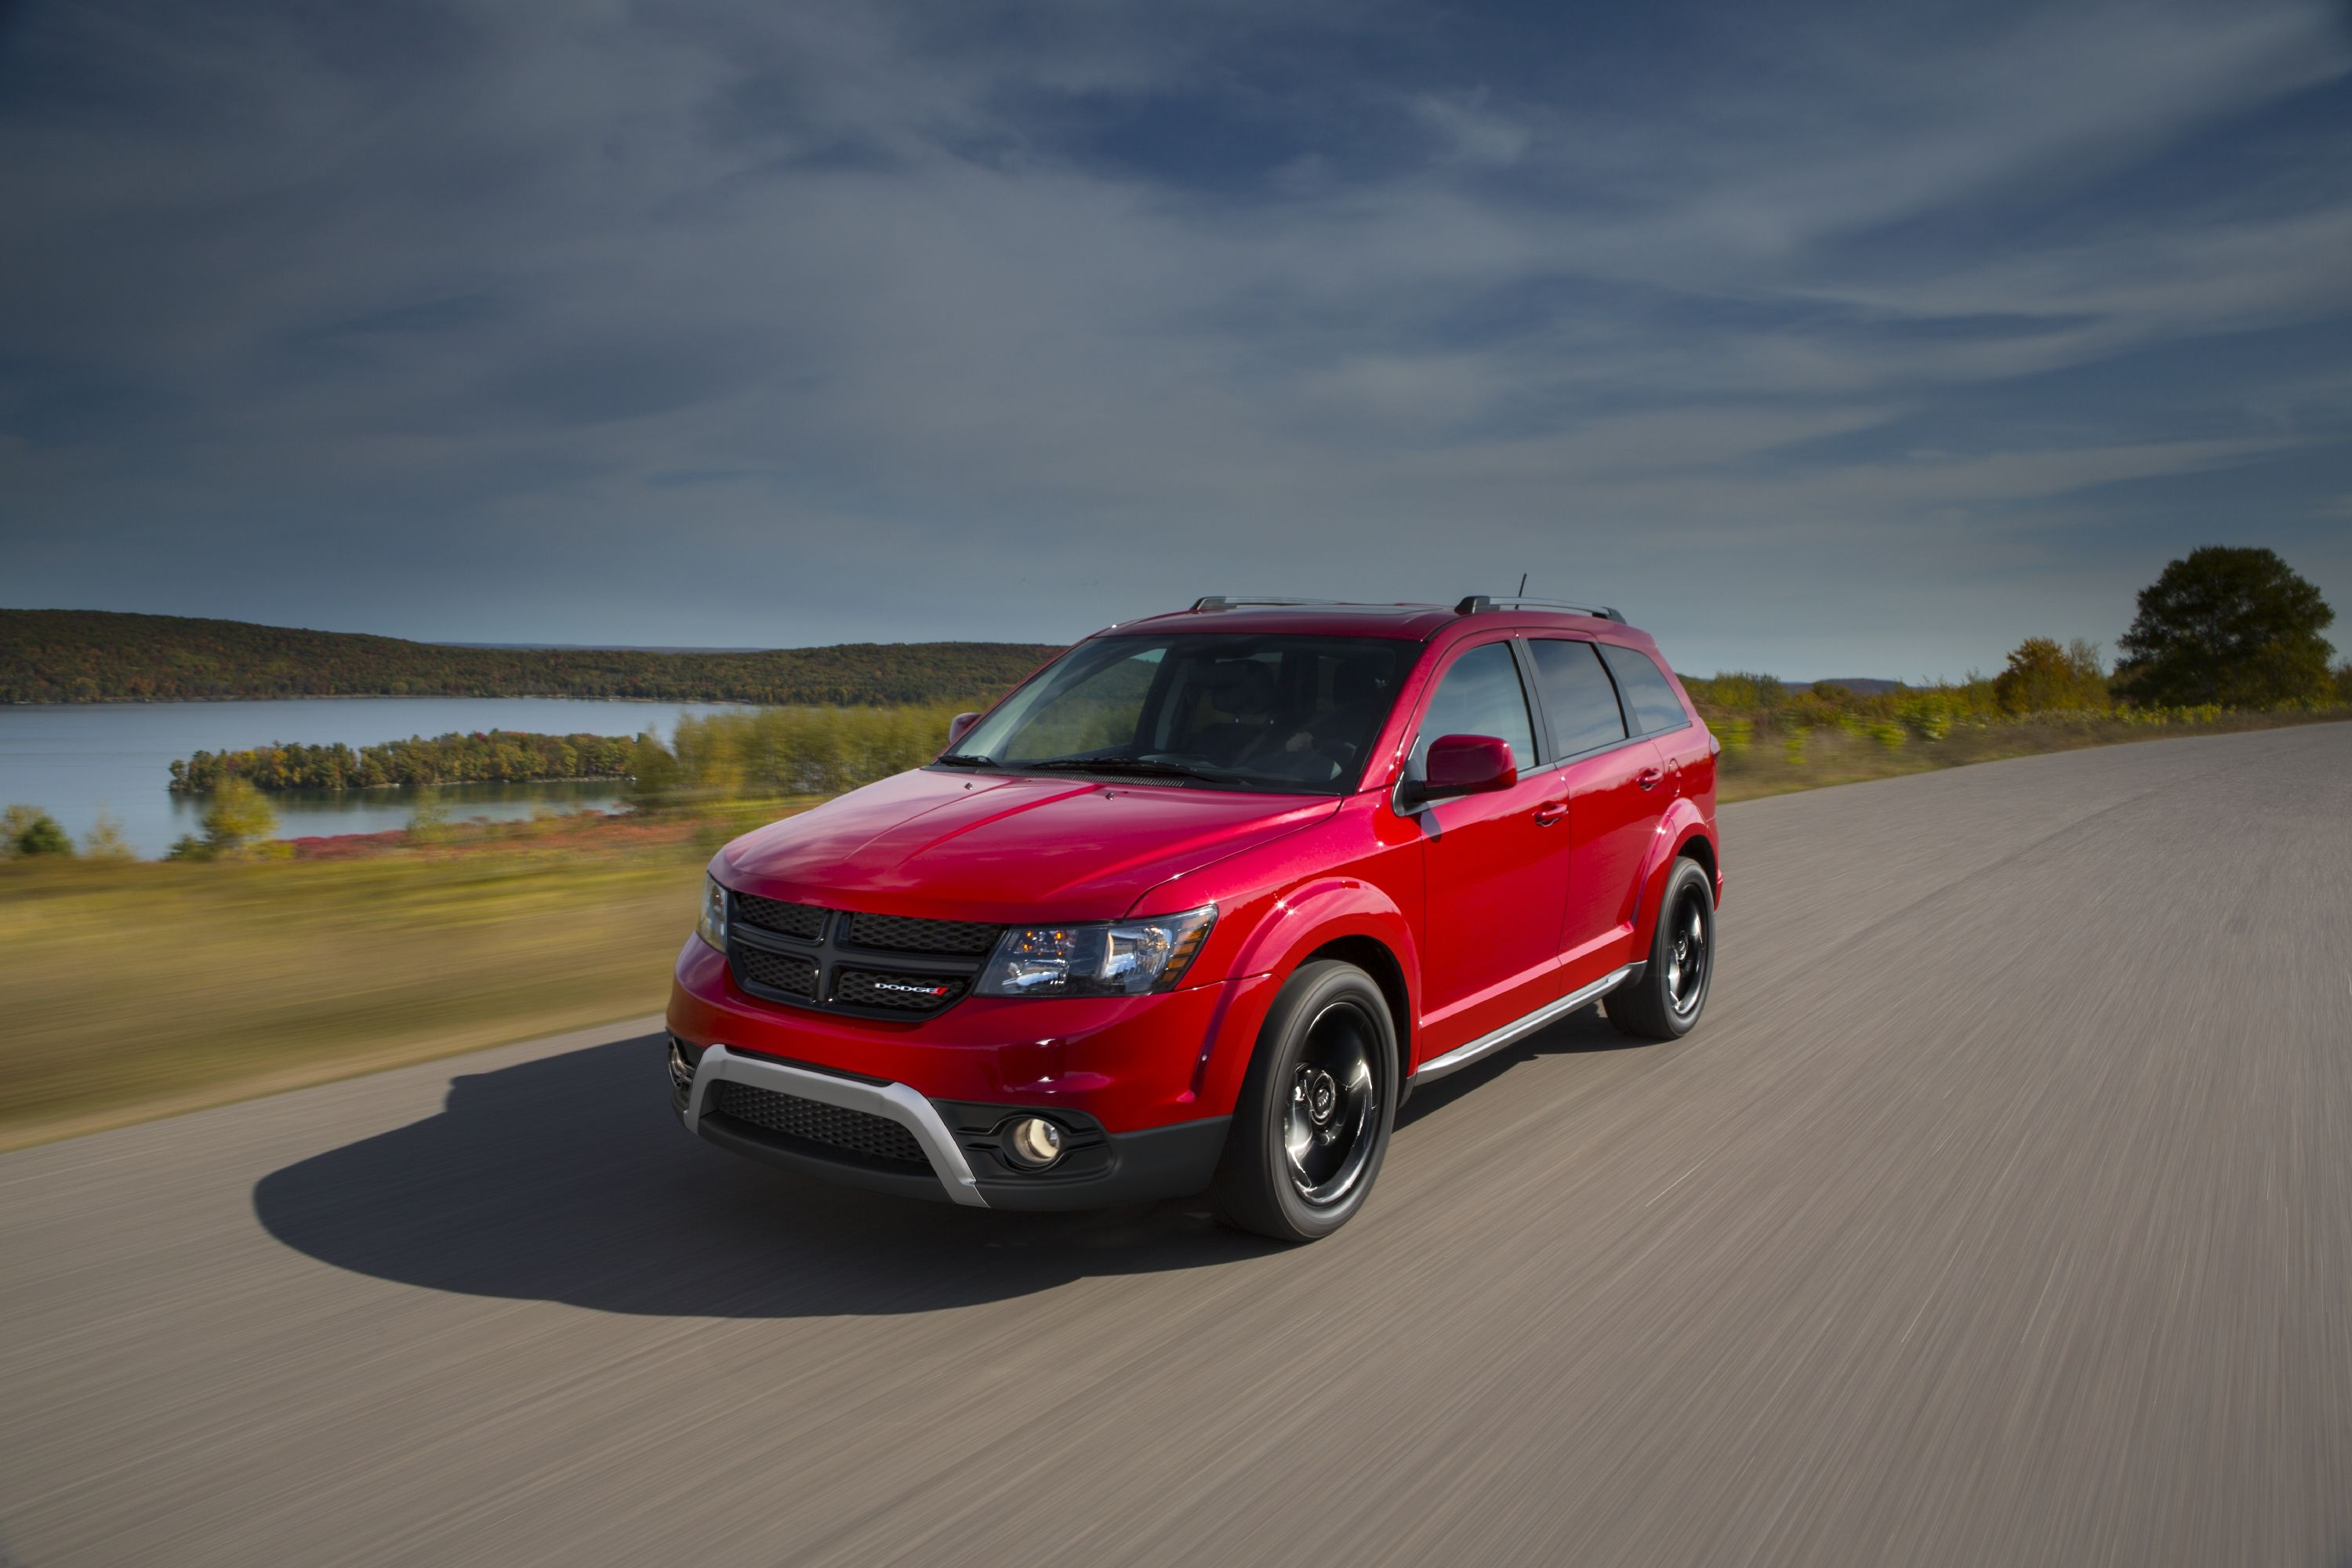 2020 Dodge Journey Photos